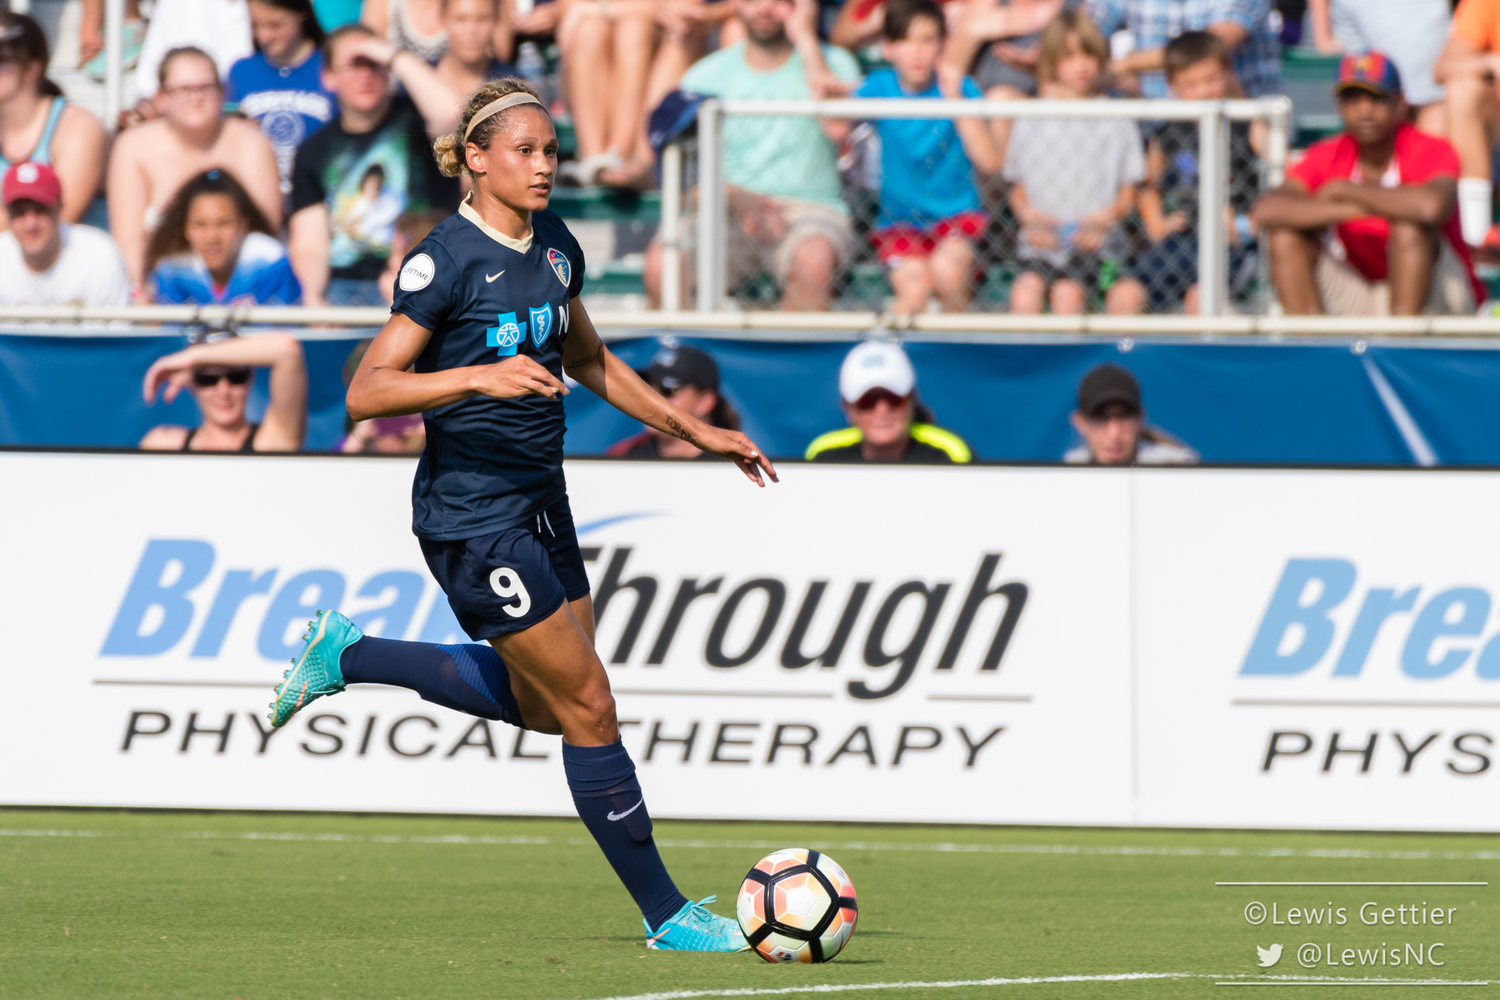 Lynn Williams suffered a high-ankle sprain while with the USWNT but could return for the Courage as early as this weekend. (photo copyright Lewis Gettier)